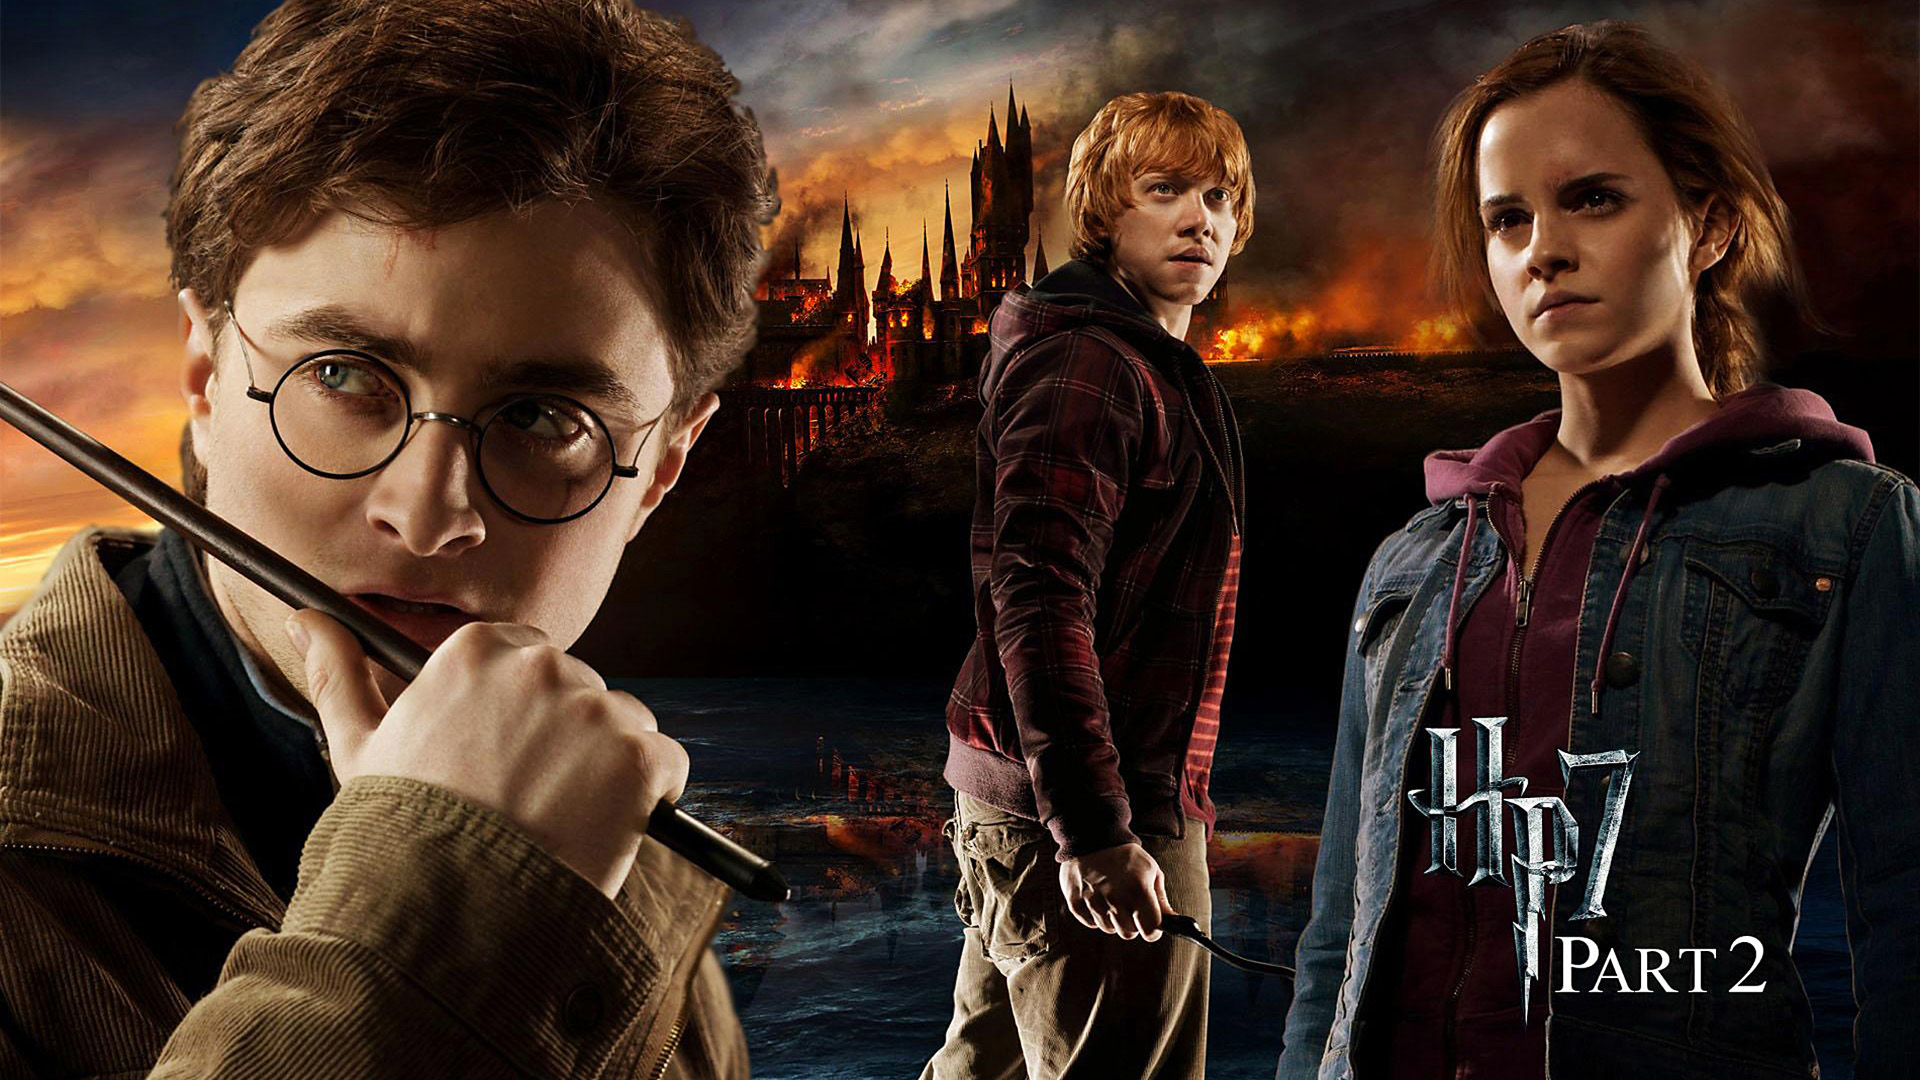 the misleading music in a scene of harry potter and the deathly hallows In the weeks leading up to the release of harry potter and the deathly hallows, part 1, fans were in a frenzy, trying to figure out just how much of the book would make the first film, which scenes would delight and disappoint, and what characters might not return ever again.